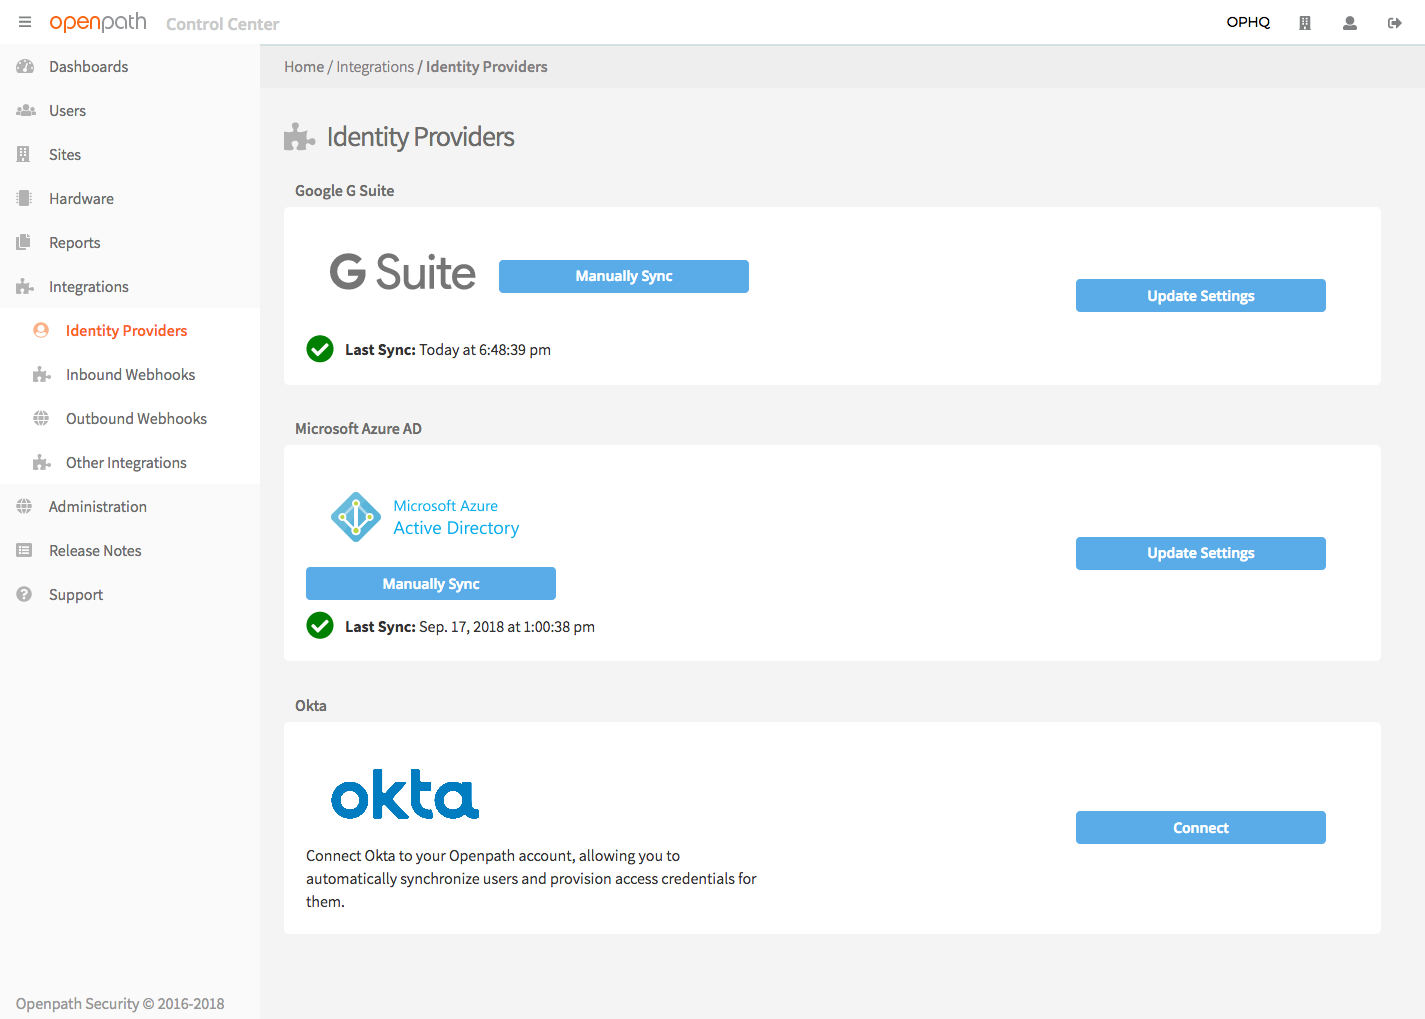 Screenshot: In the Openpath Control Center, enable Okta integration in the Integrations page